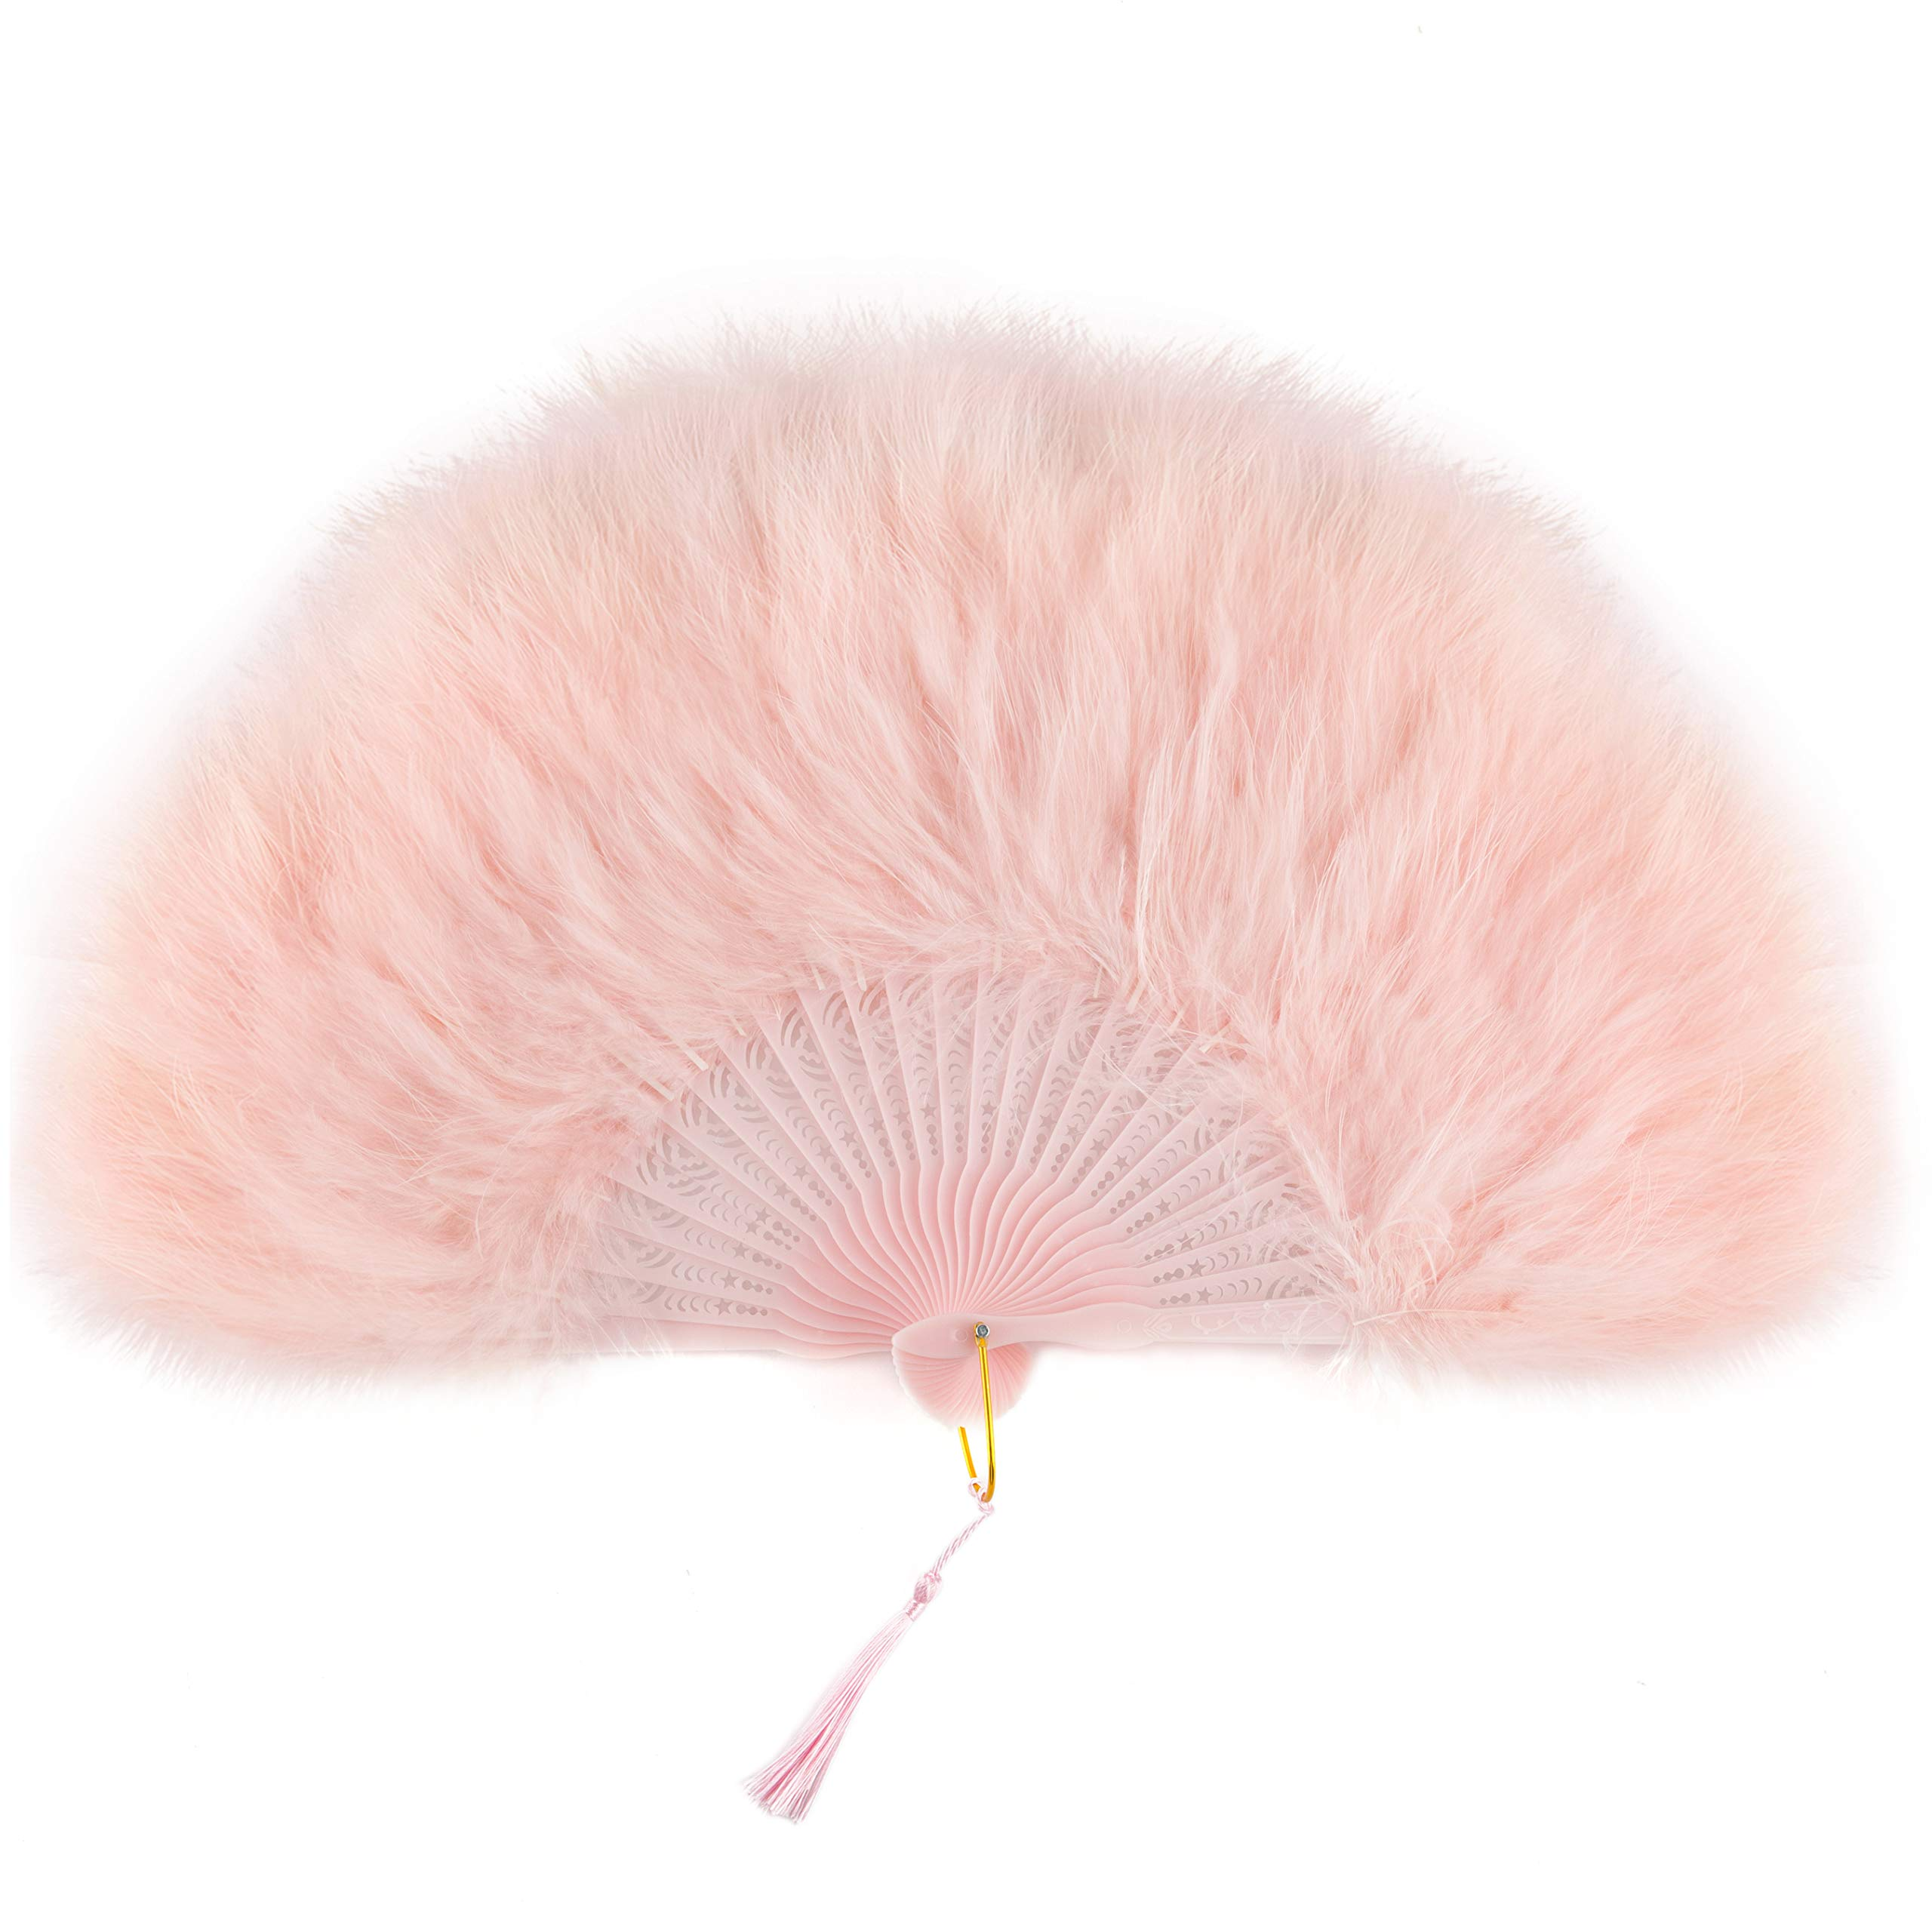 BABEYOND - BABEYOND Roaring 20s Vintage Style Folding Handheld Flapper Marabou Feather Hand Fan for Costume Halloween Dancing Party Tea Party Variety Show 11 Inches X 20 Inches (Pink-Pink Rib)